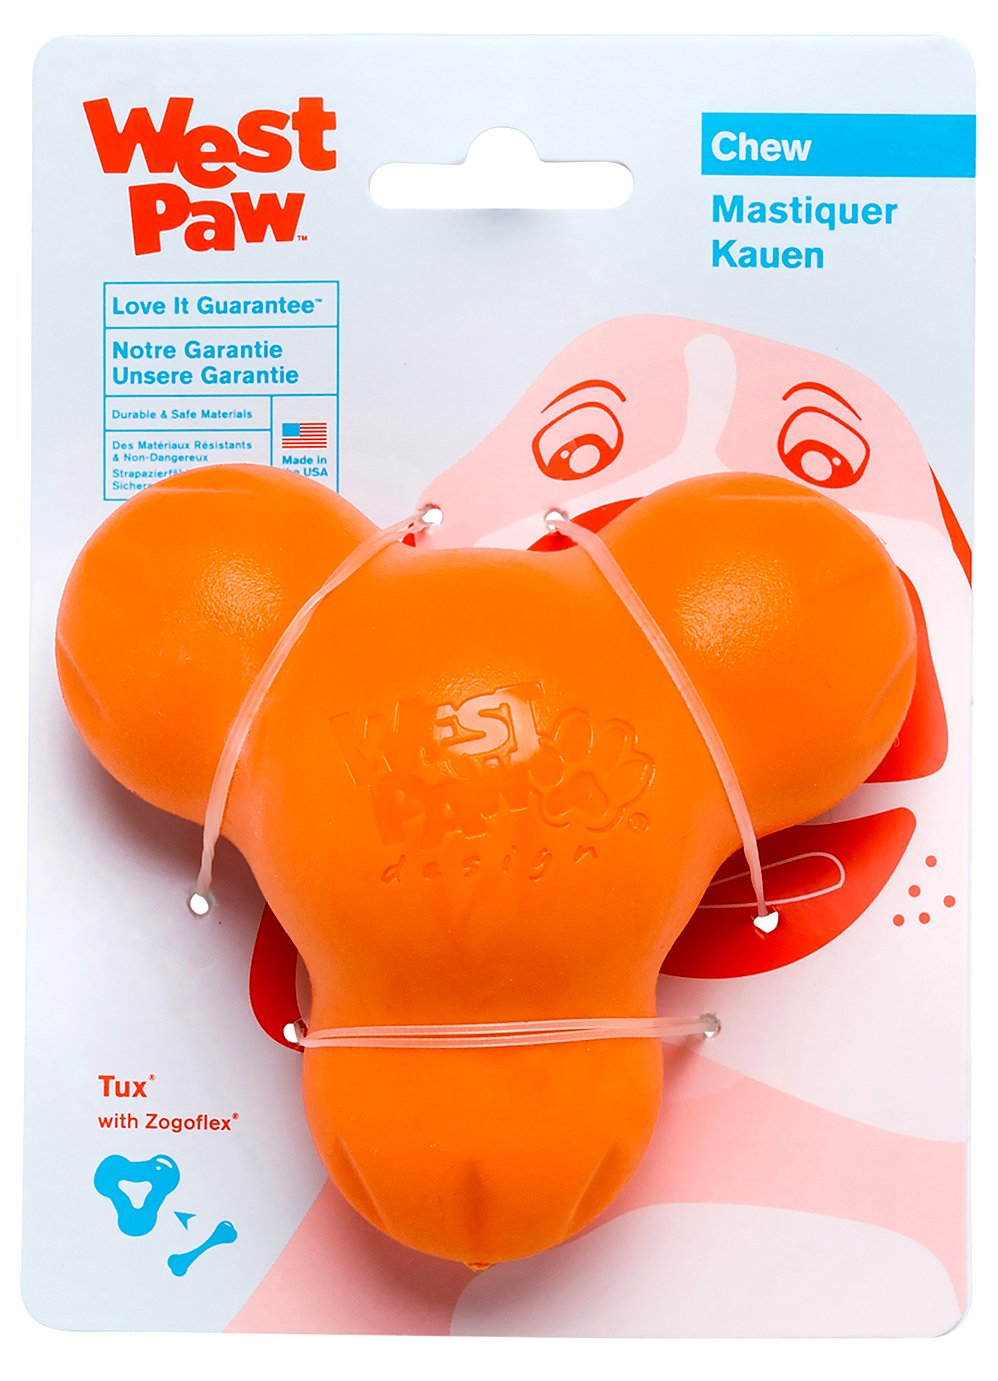 West Paw Zogoflex Tux Interactive Treat Dispensing Dog Chew Toy for Aggressive Chewers, 100% Guaranteed Tough, It Floats!, Made in USA, Large, Tangerine